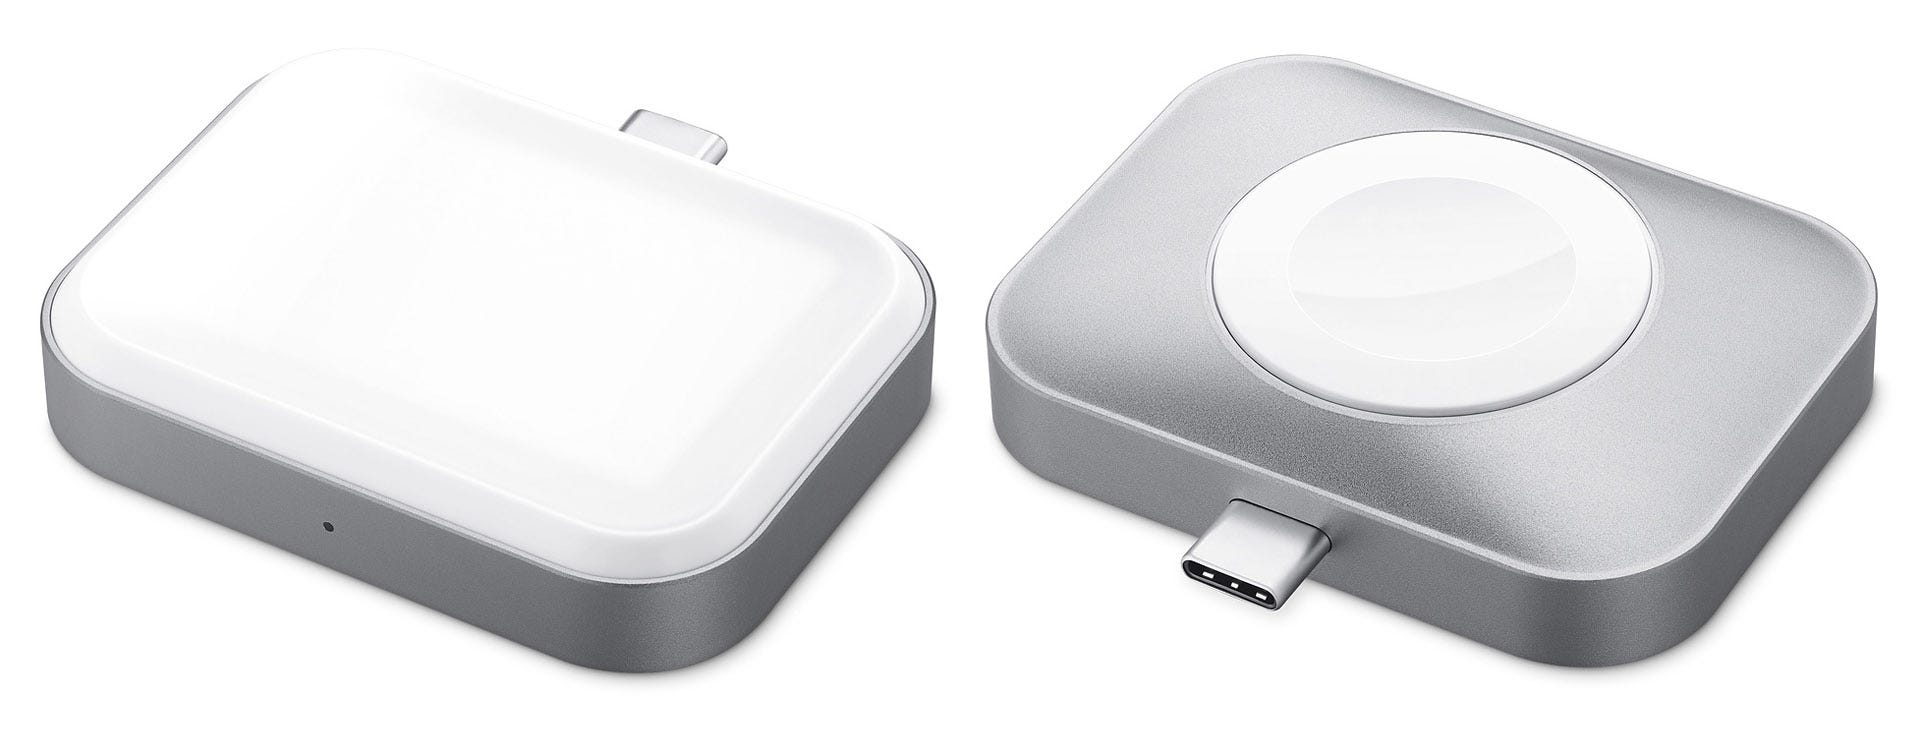 Double-sided Apple Watch and AirPods charger